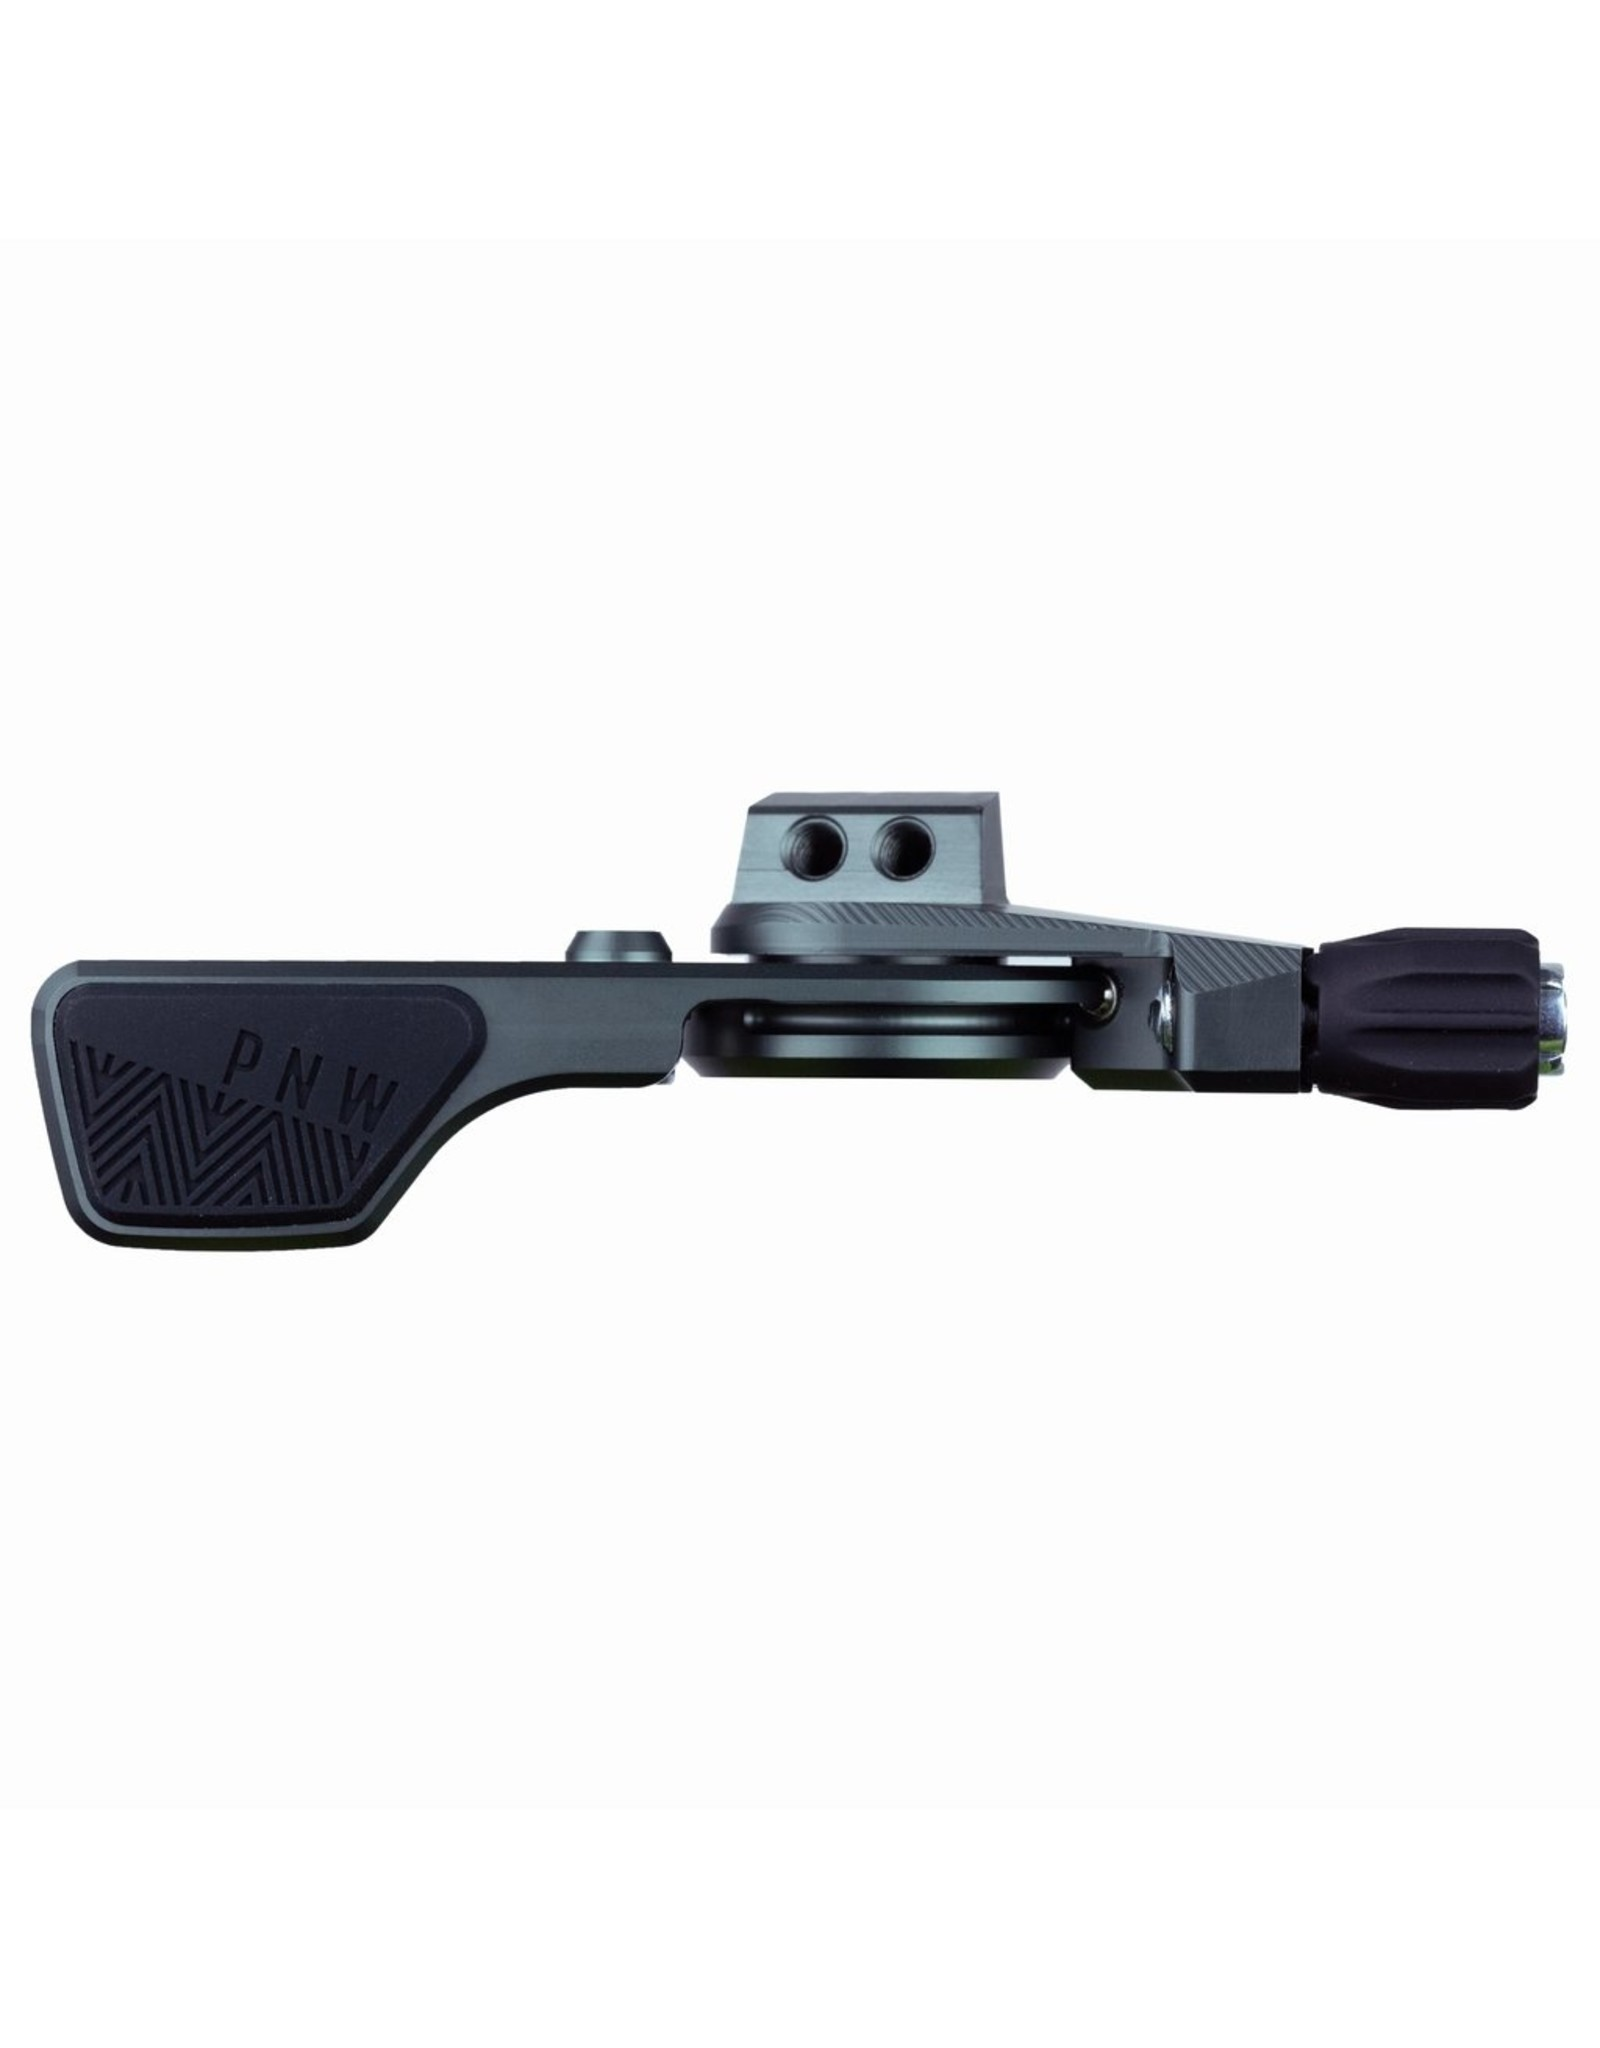 PNW Components PNW Loam Lever - 022.2 Clamp - Black OUT